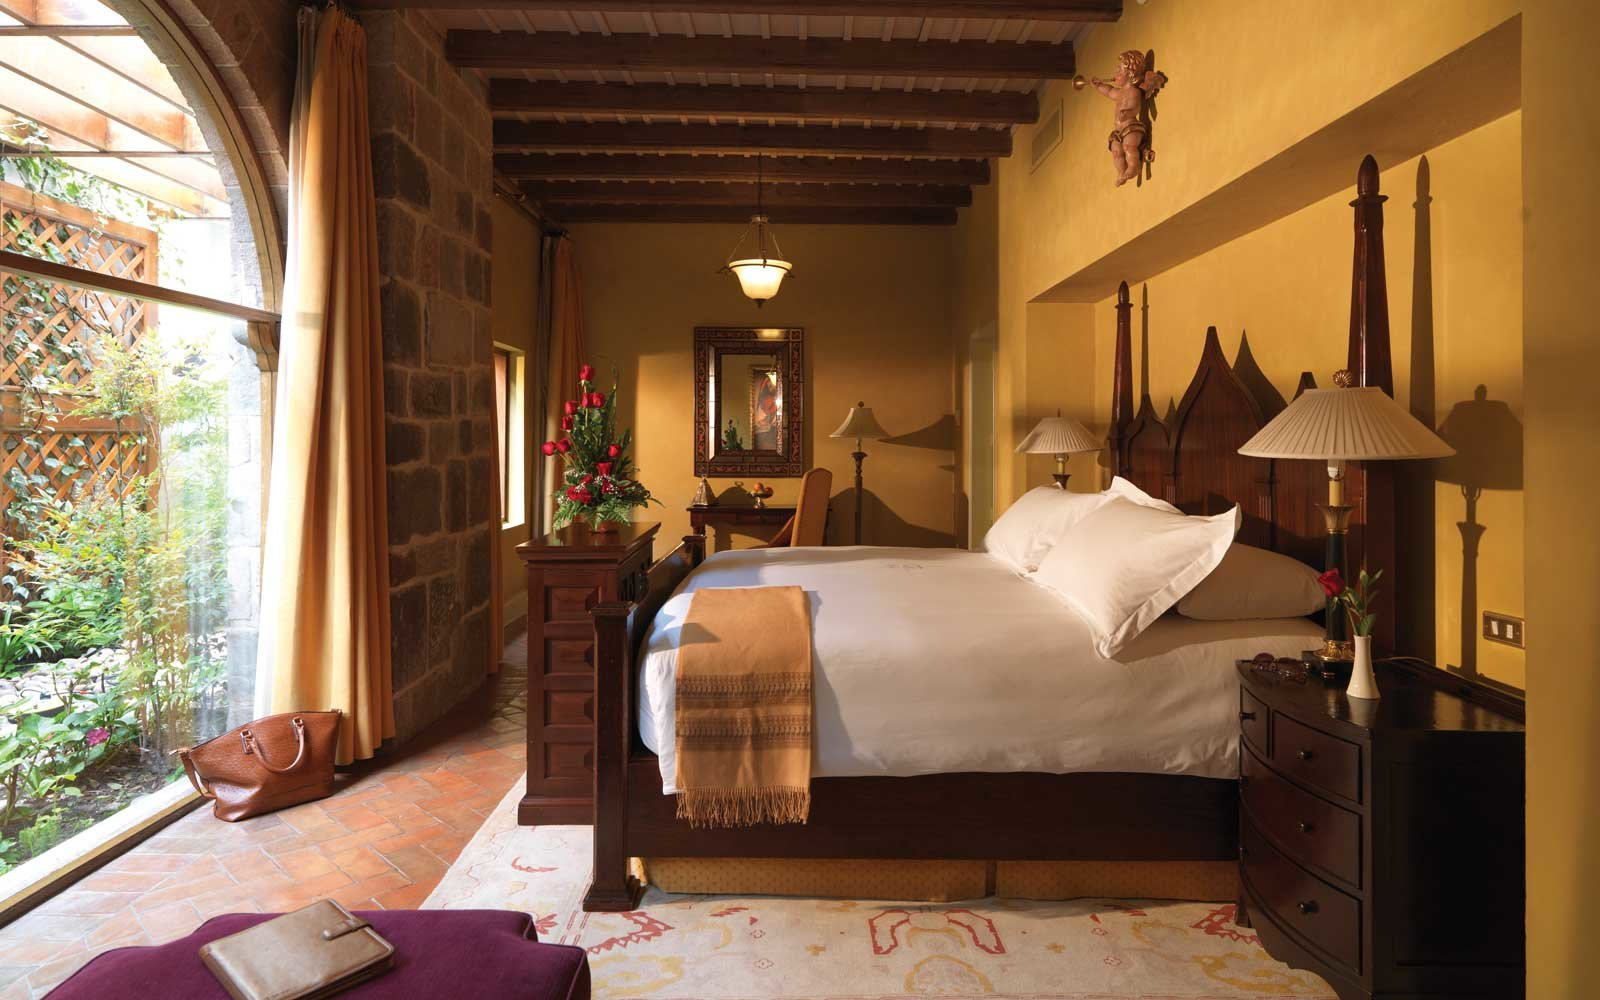 Room at the Belmond Hotel Monasterio